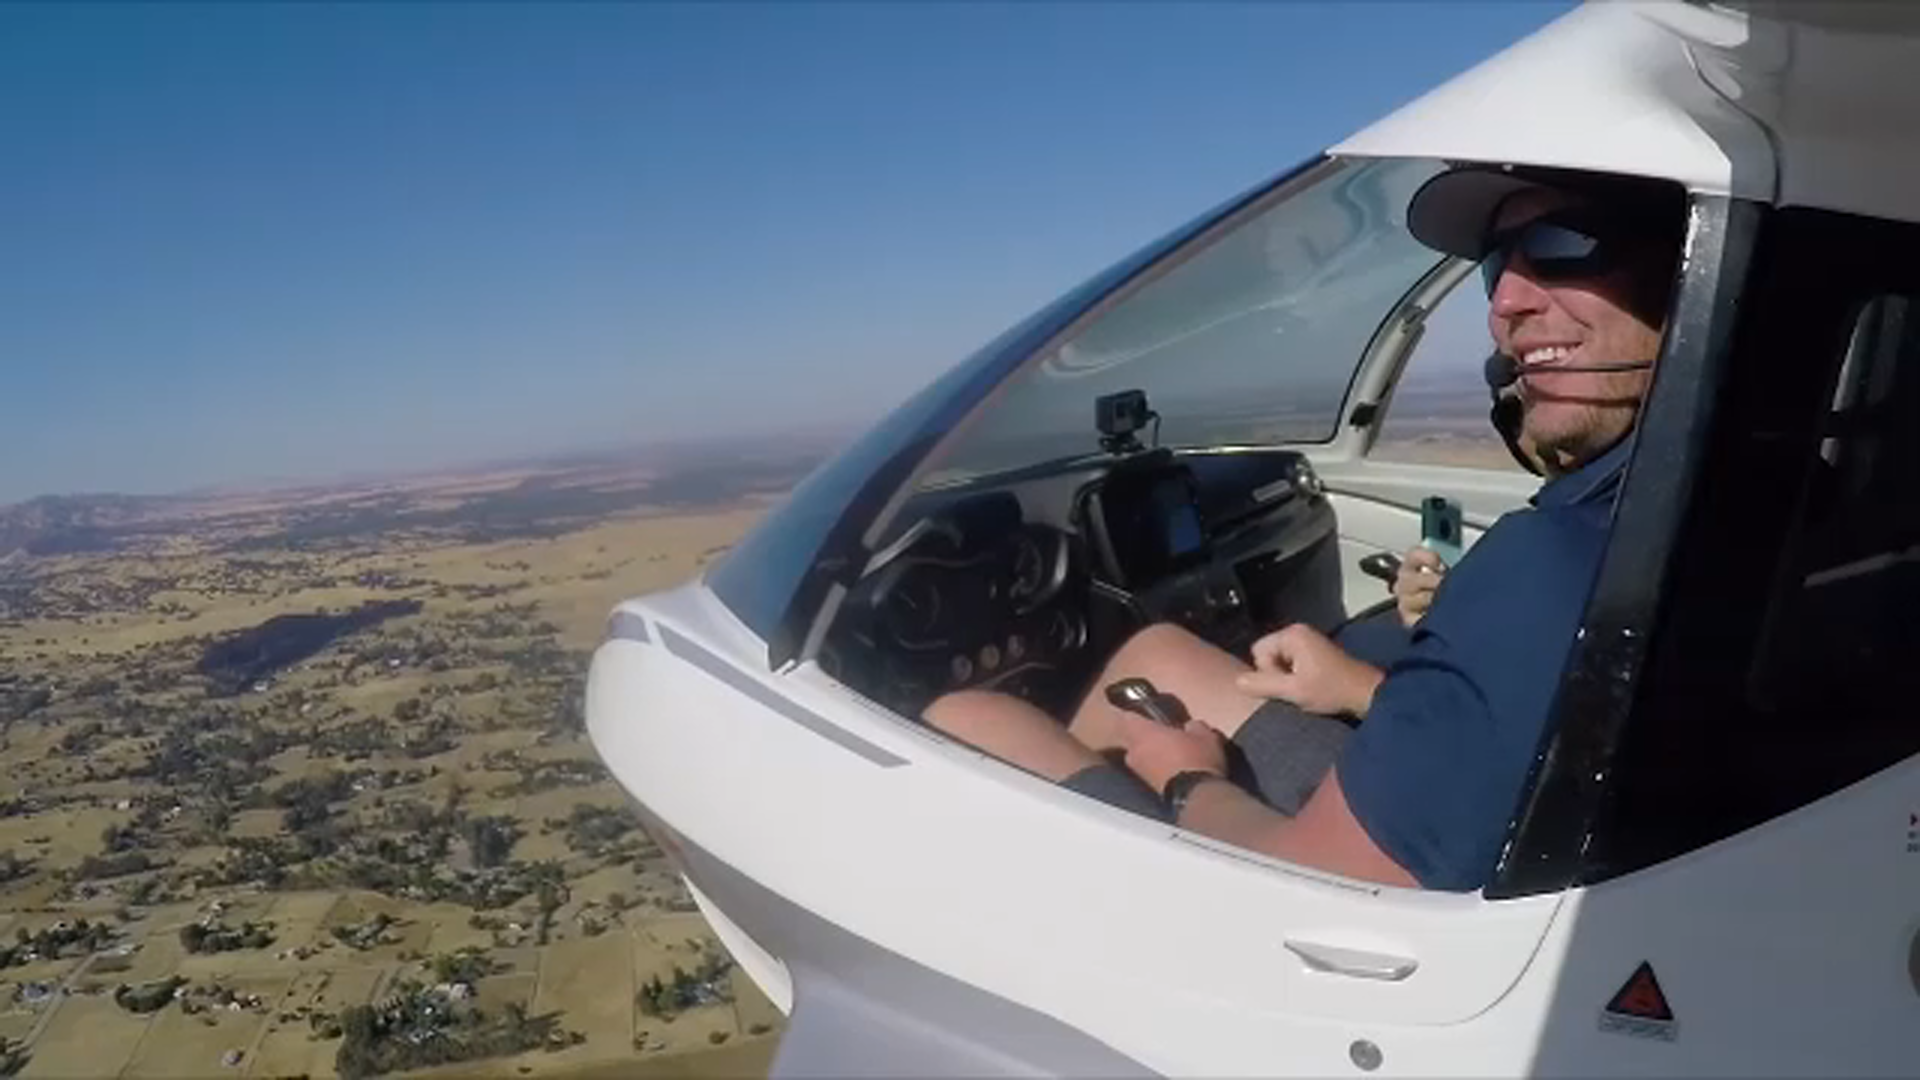 """<div class=""""meta image-caption""""><div class=""""origin-logo origin-image none""""><span>none</span></div><span class=""""caption-text"""">Roy Halladay in the cockpit, piloting an ICON A5, in a video Action News broadcast, shortly after he received his own plane.</span></div>"""